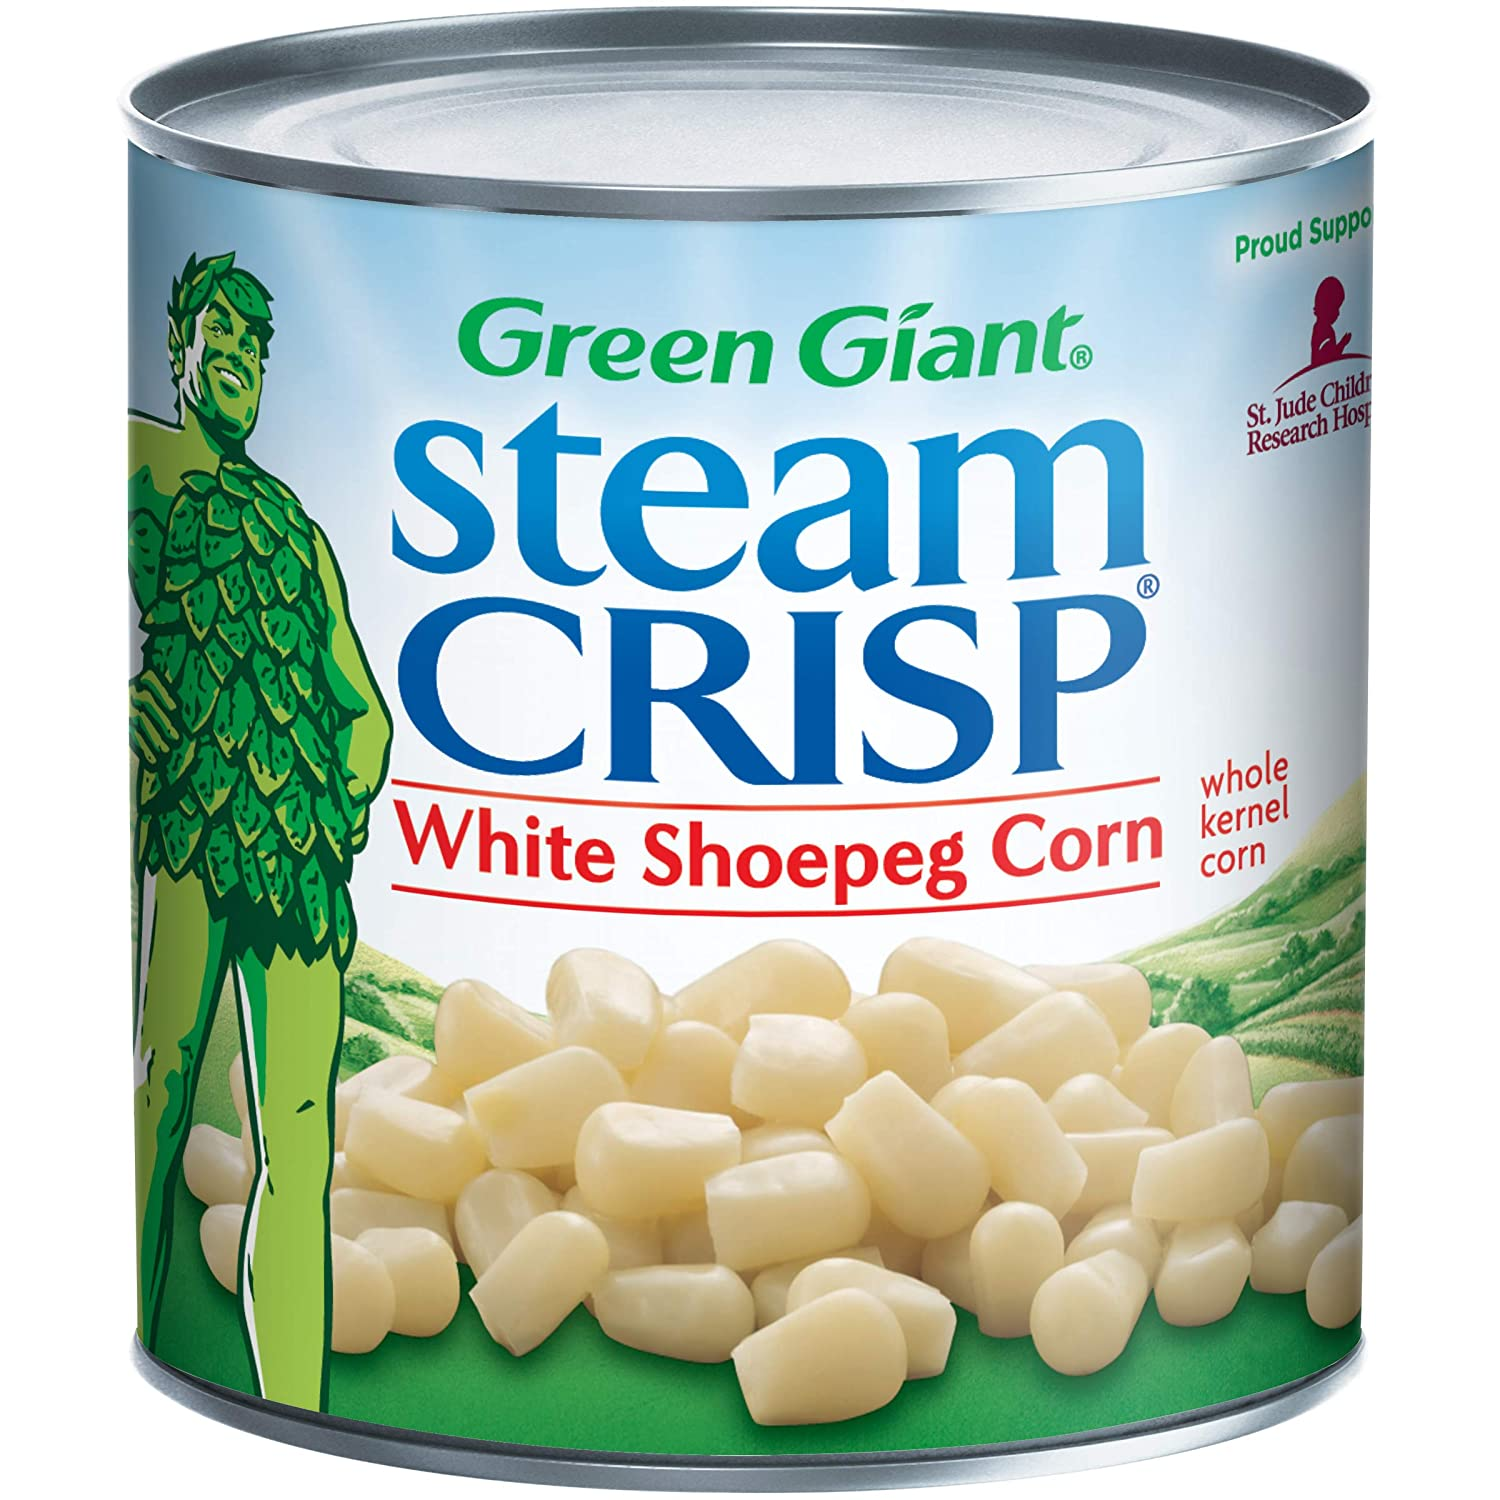 Green Giant SteamCrisp White Shoepeg Whole Kernel Corn, 11 Ounce Can (Pack of 12)